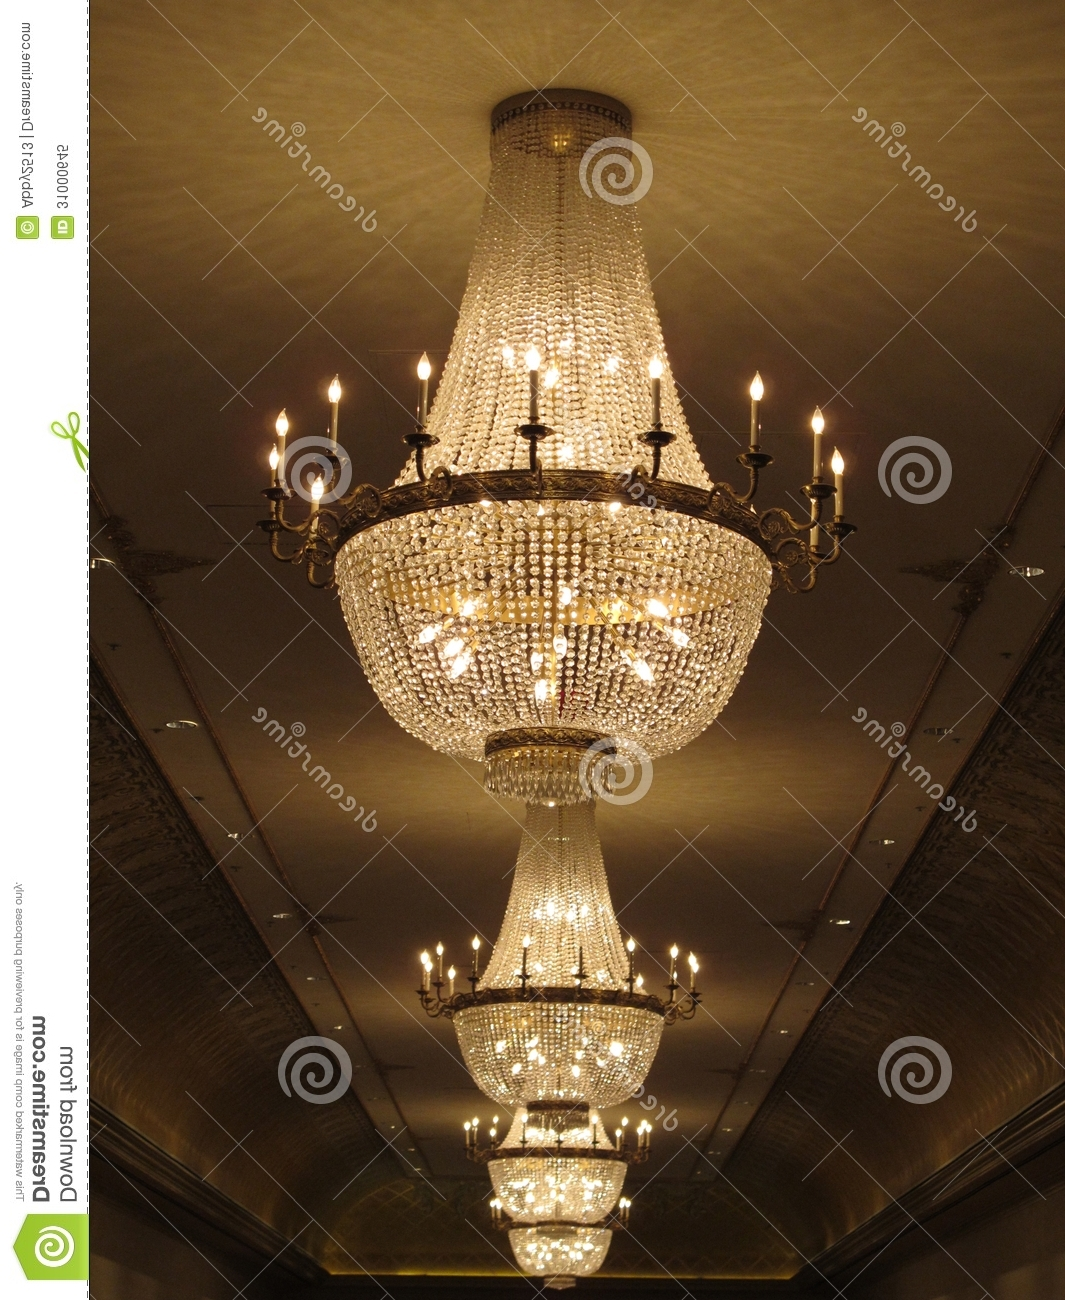 Ballroom Chandeliers Regarding Most Recent Gorgeous Crystal Chandelier Stock Image – Image Of Candles, Assets (View 16 of 20)